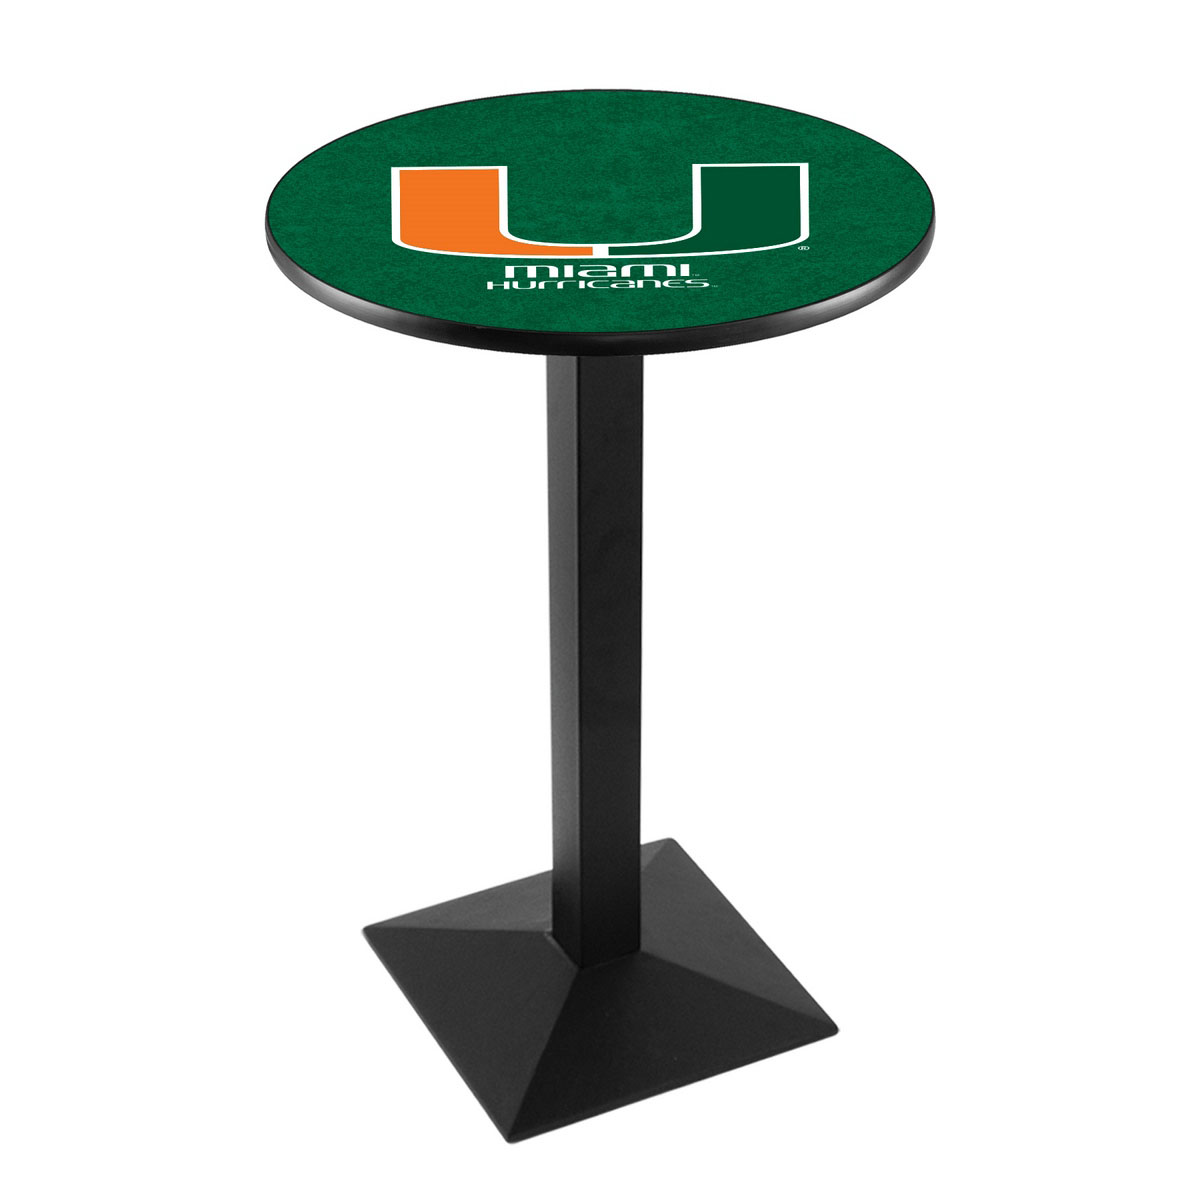 Search University Miami Fl Logo Pub Bar Table Square Stand Product Photo